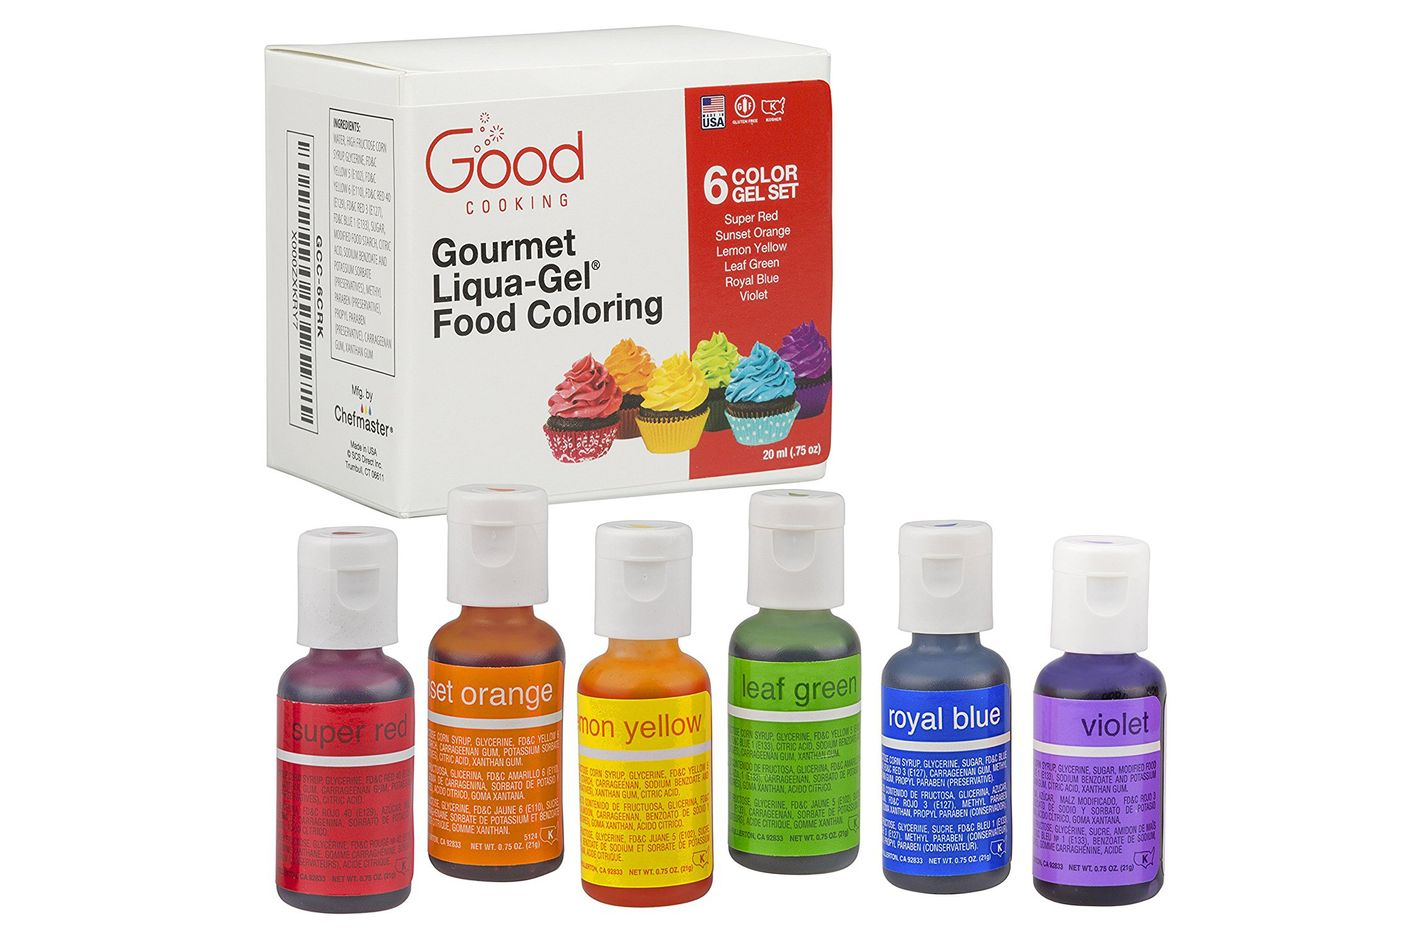 Food Coloring Liqua-Gel